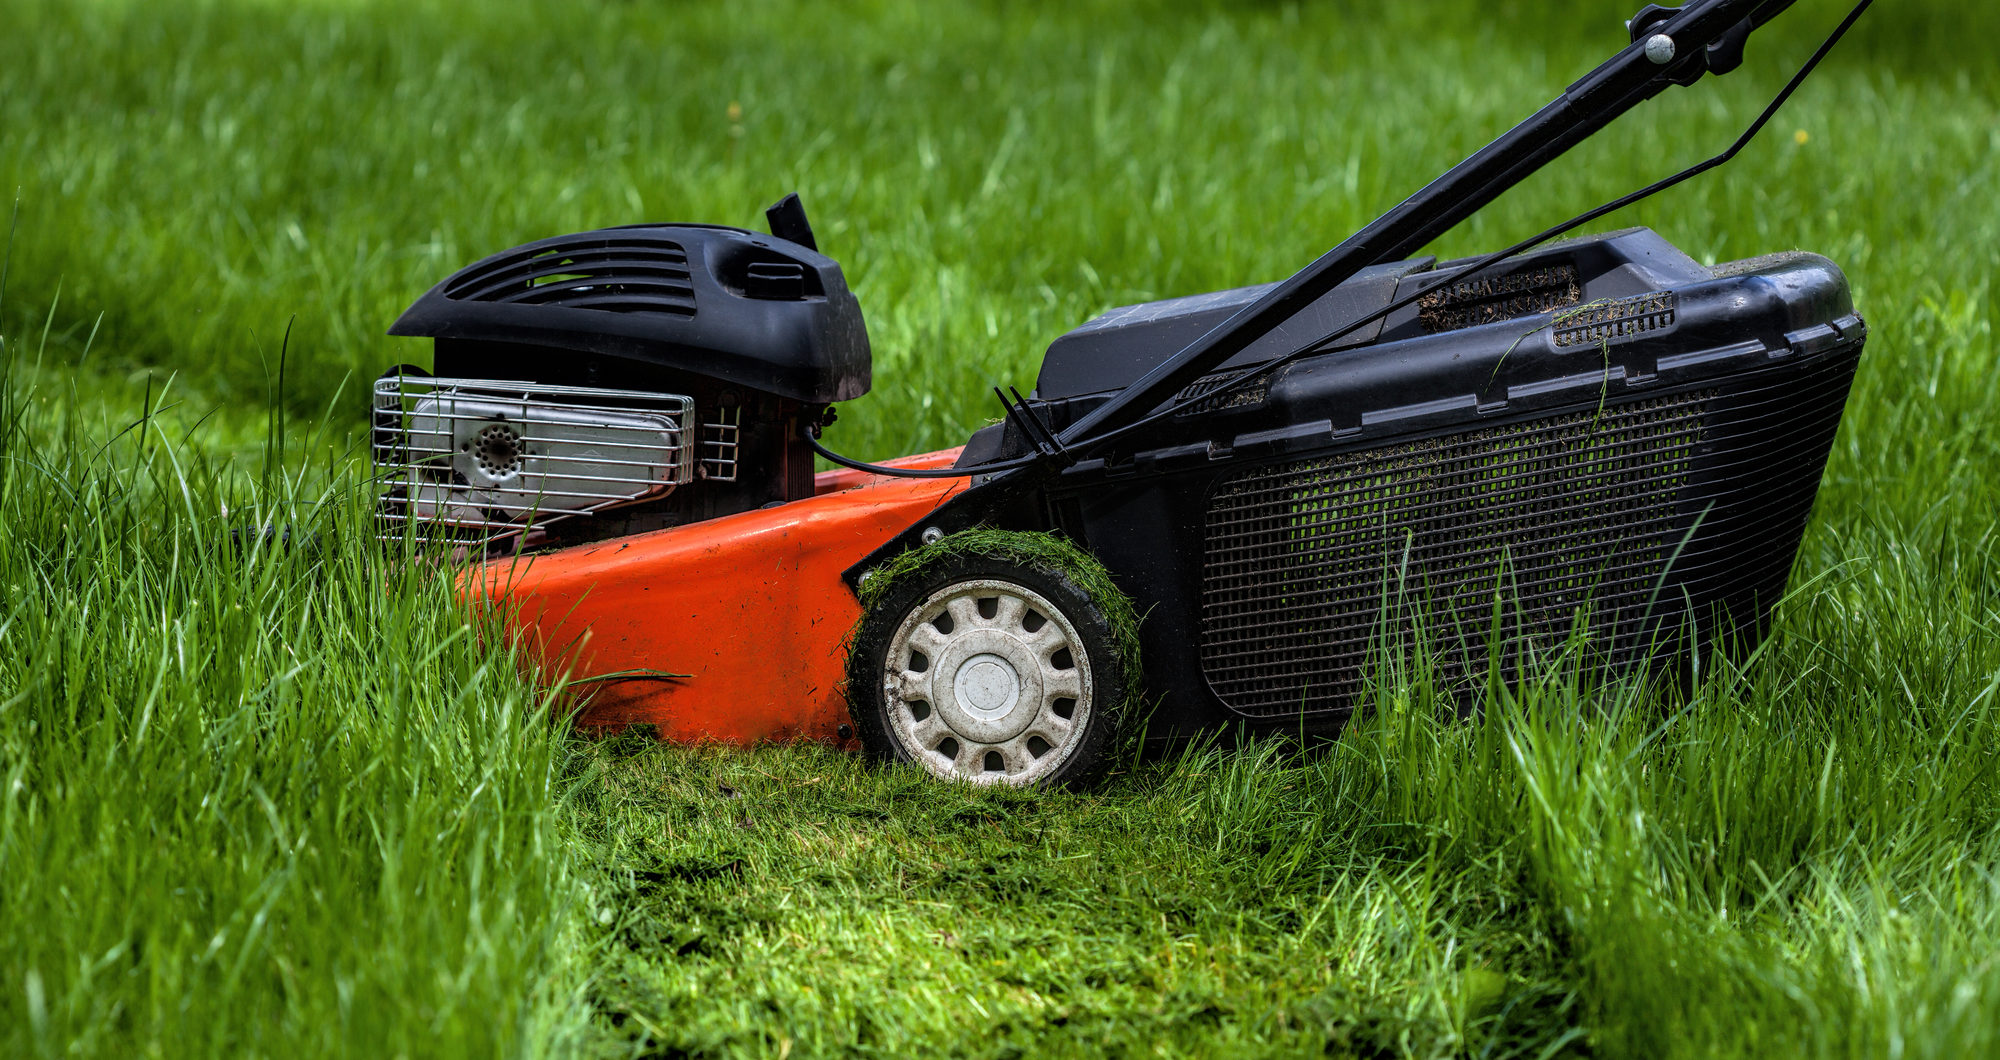 Notable Aspects To Consider Before Buying A Lawn Mower